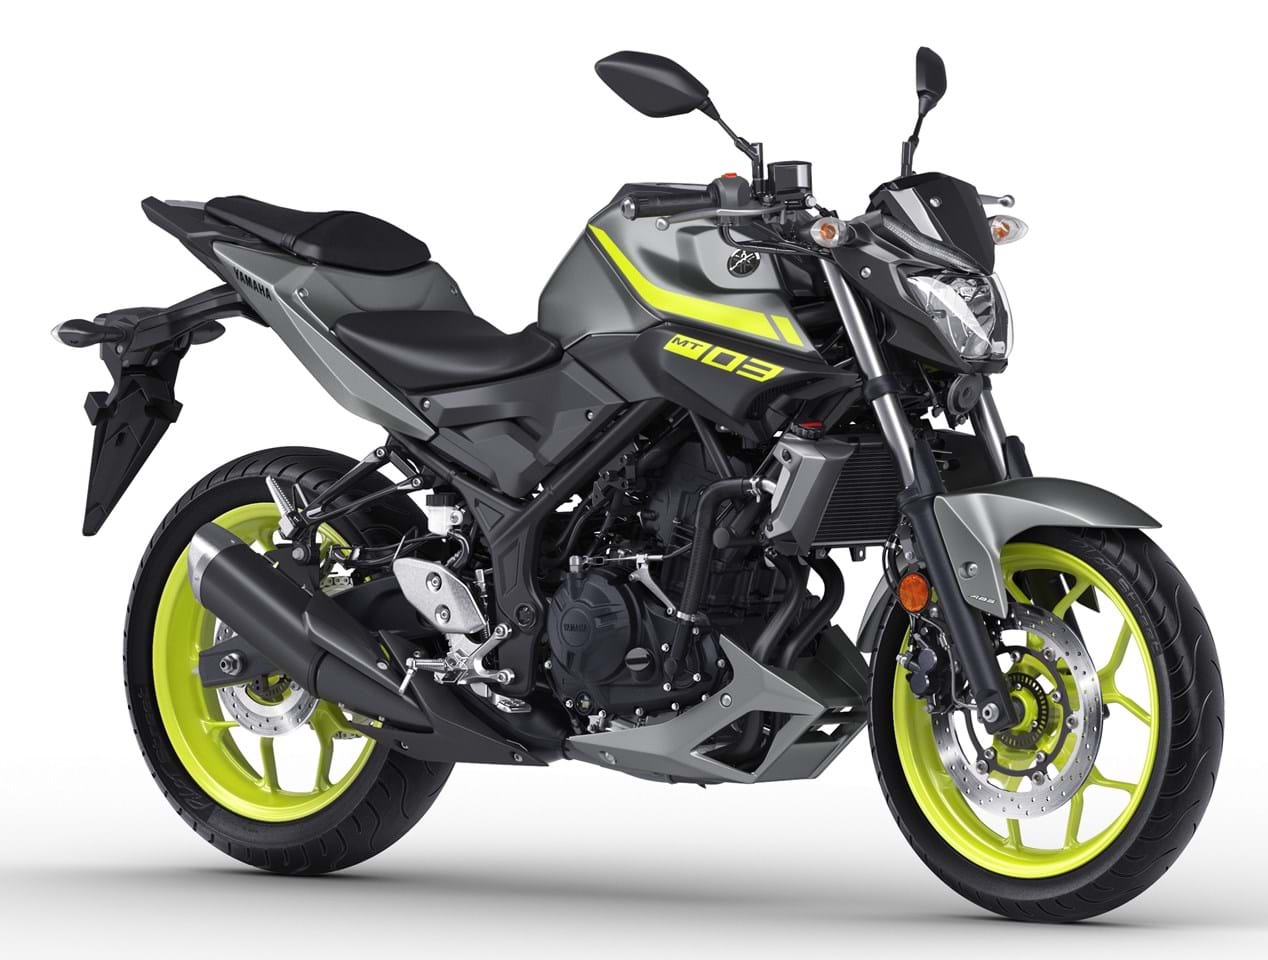 yamaha mt 03 2016 on for sale price guide the bike